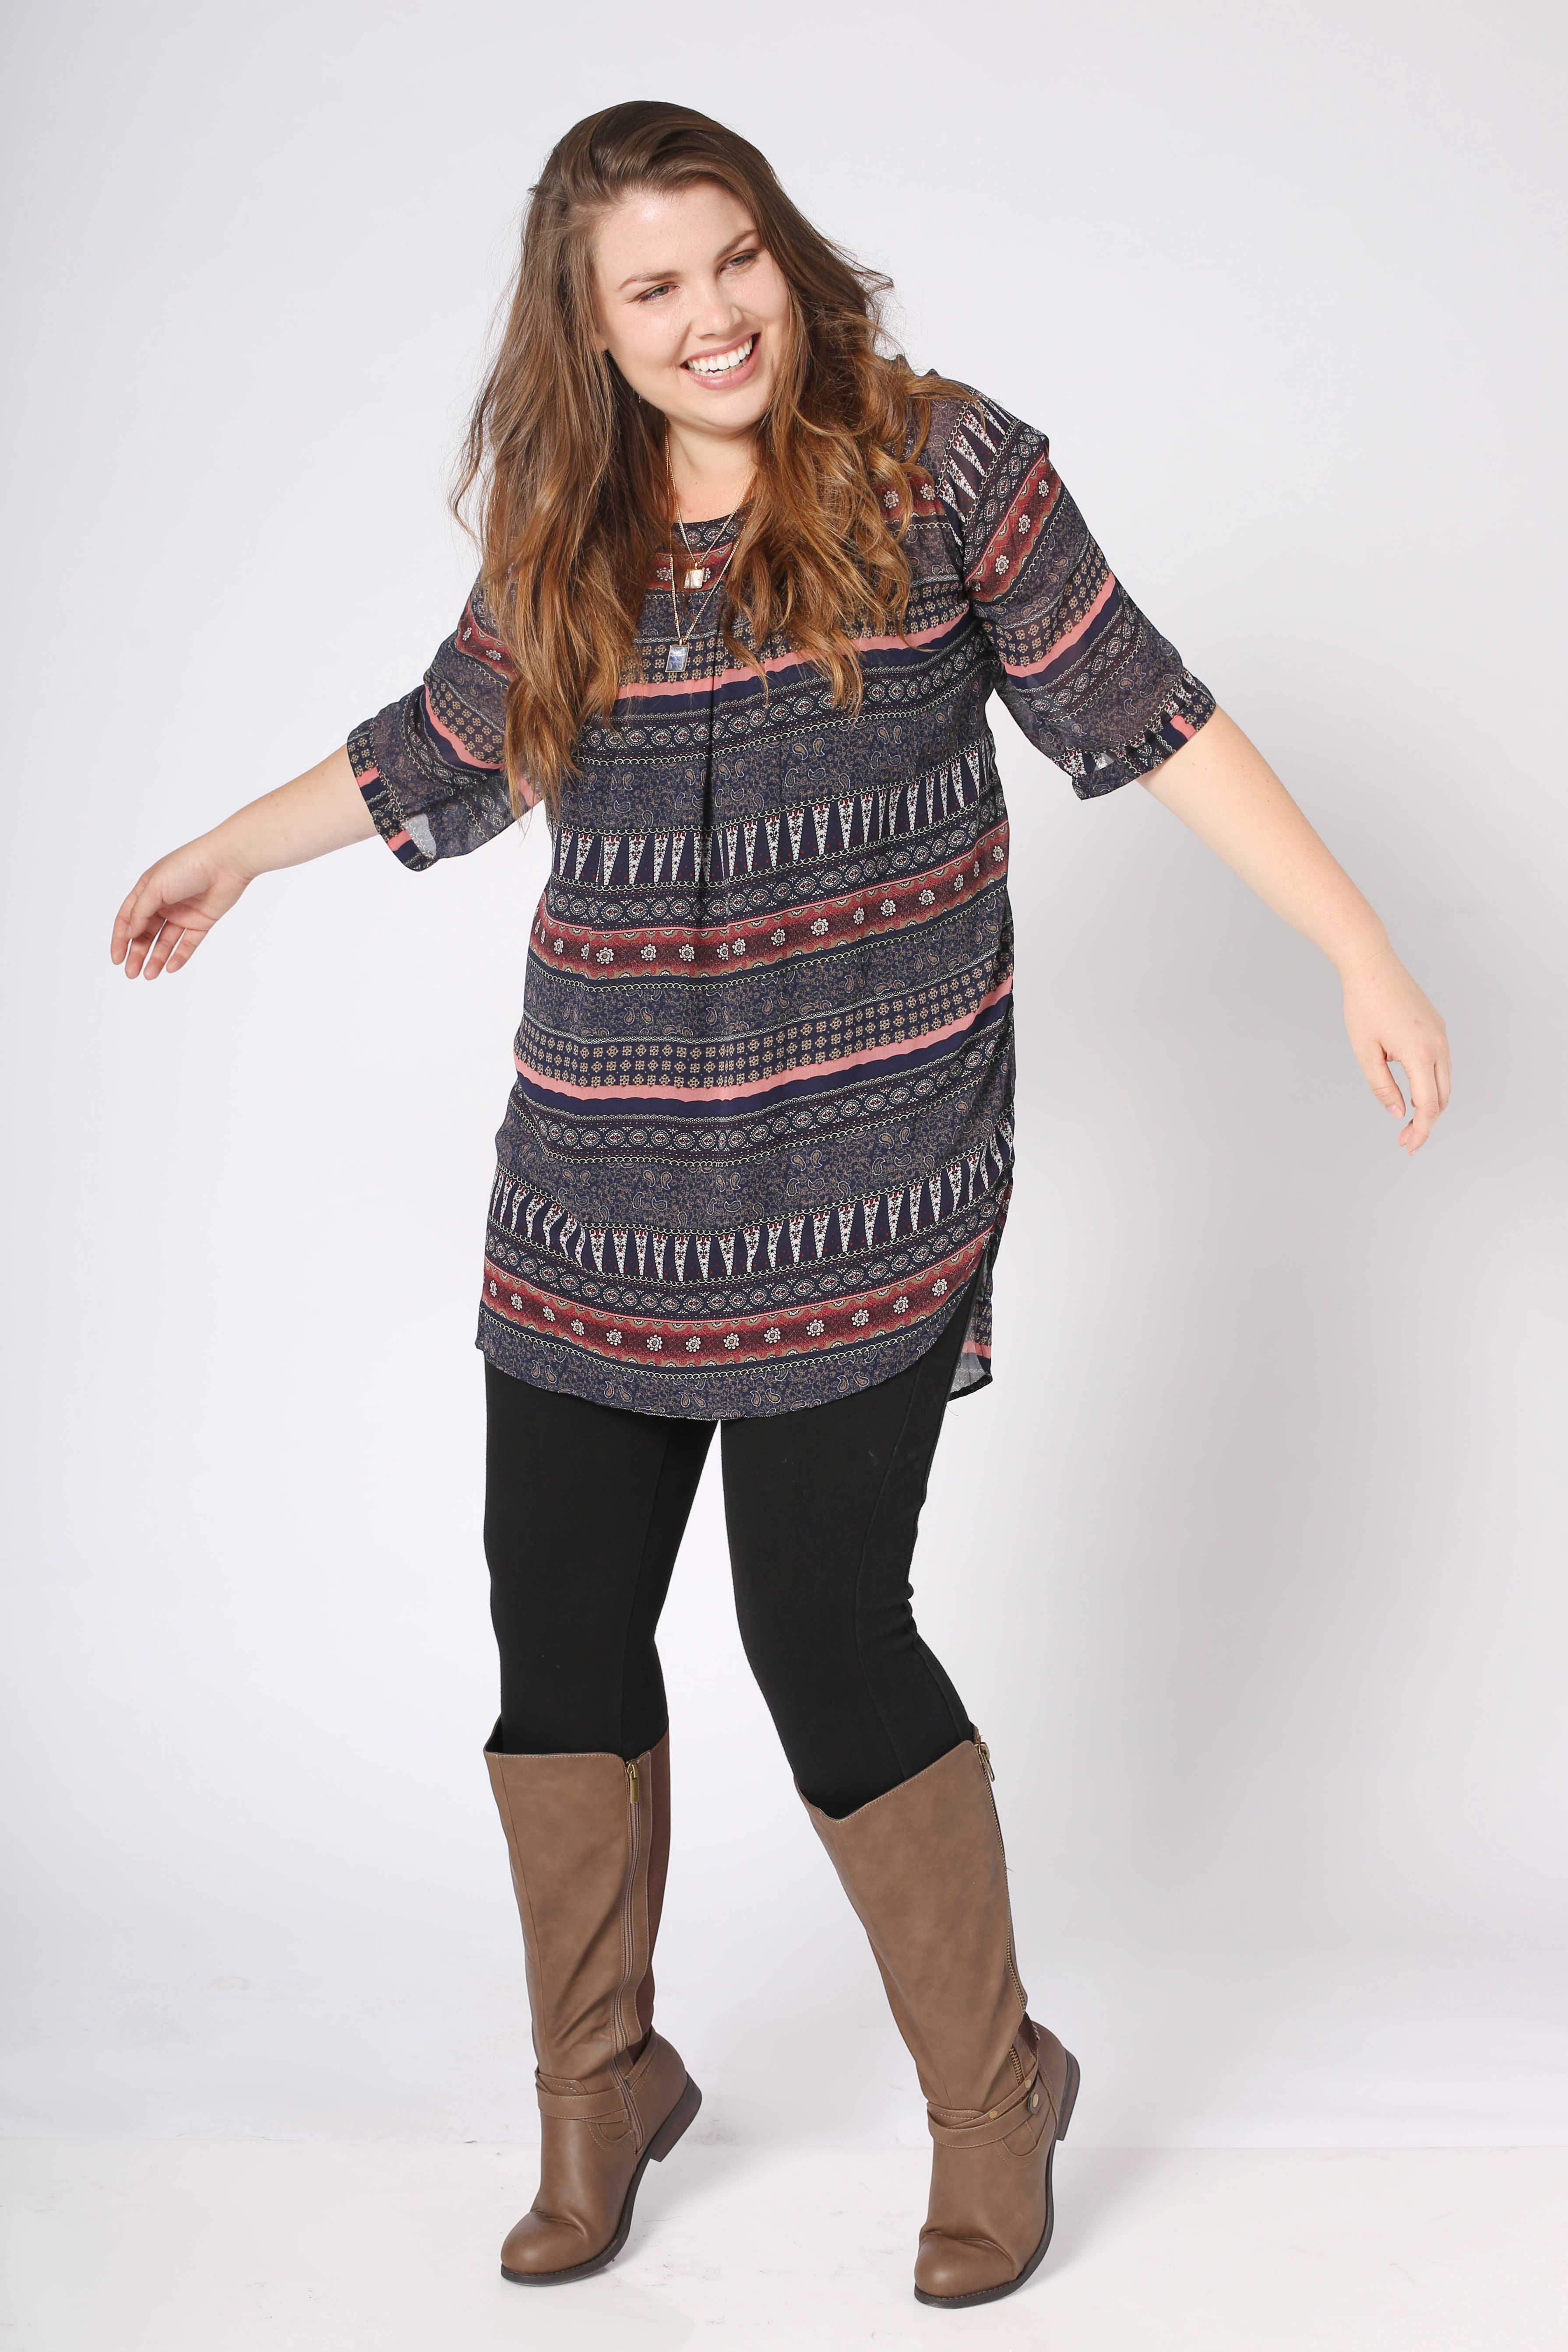 Plus Size Fashion OOTD: Pair you tunic with your favorite leggings and tall boots for the perfect fall style.